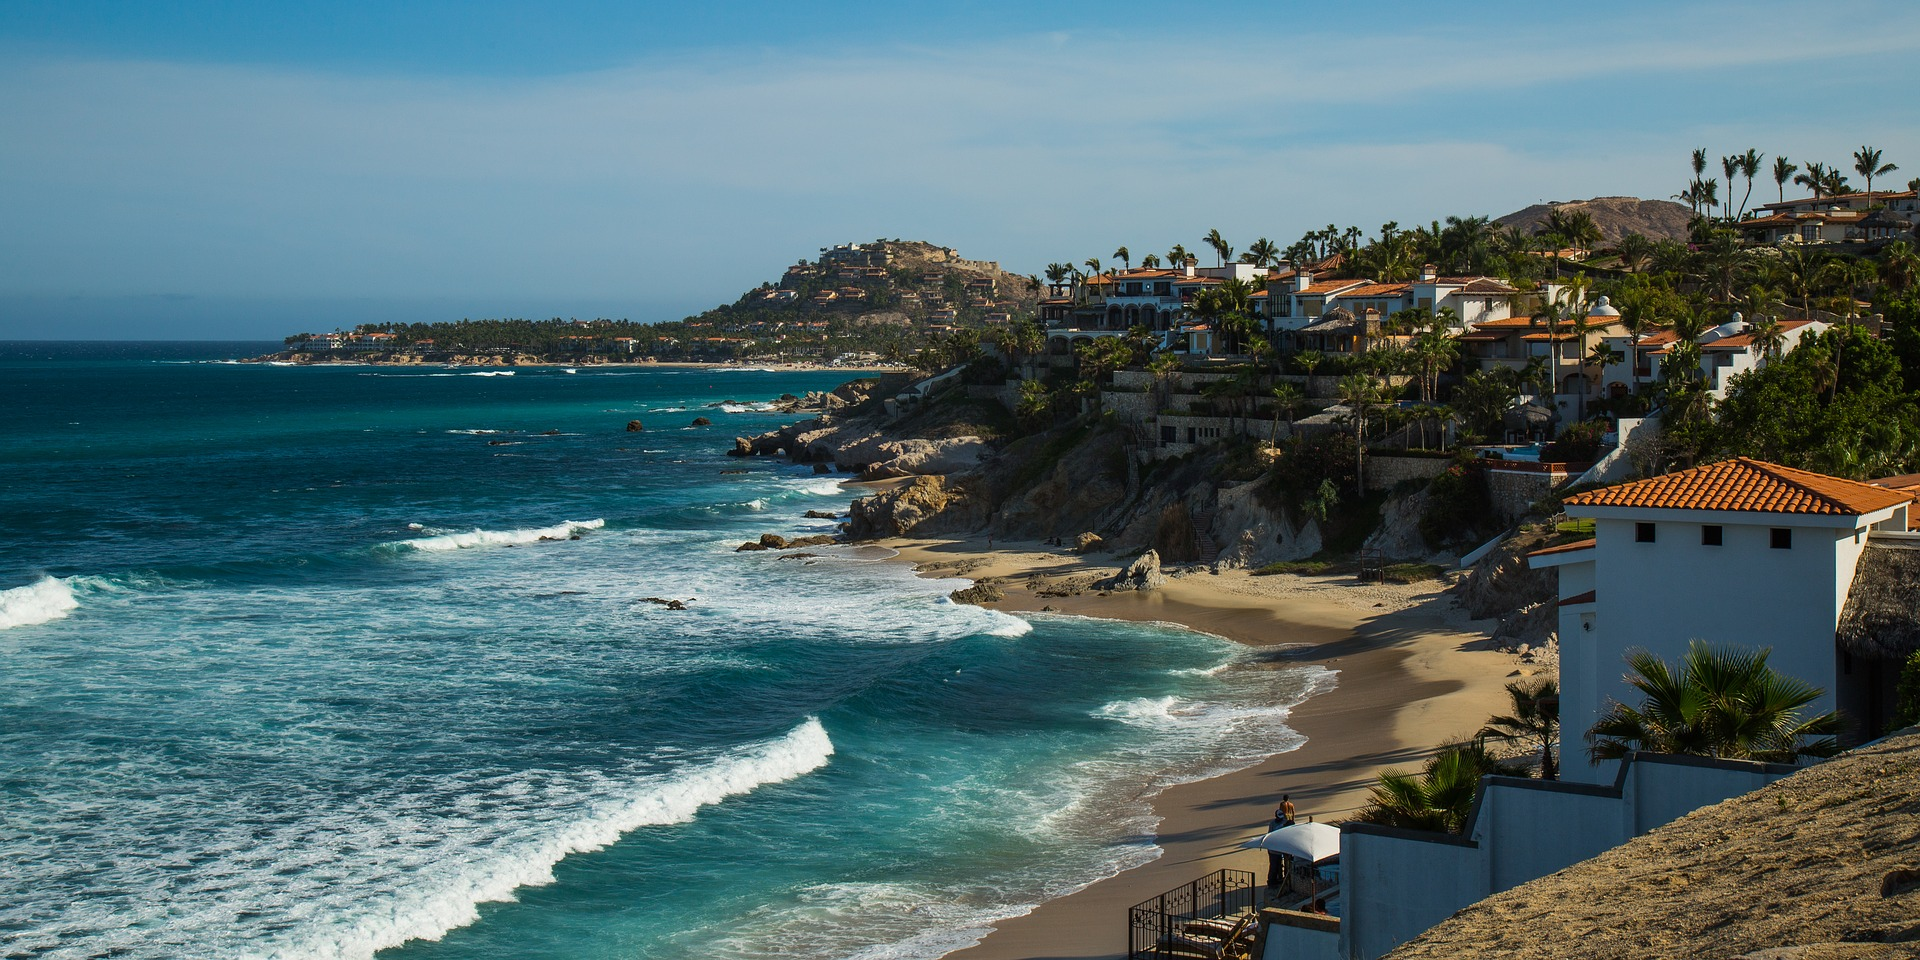 New Los Cabos convention centre propels Mexico's MICE industry forward